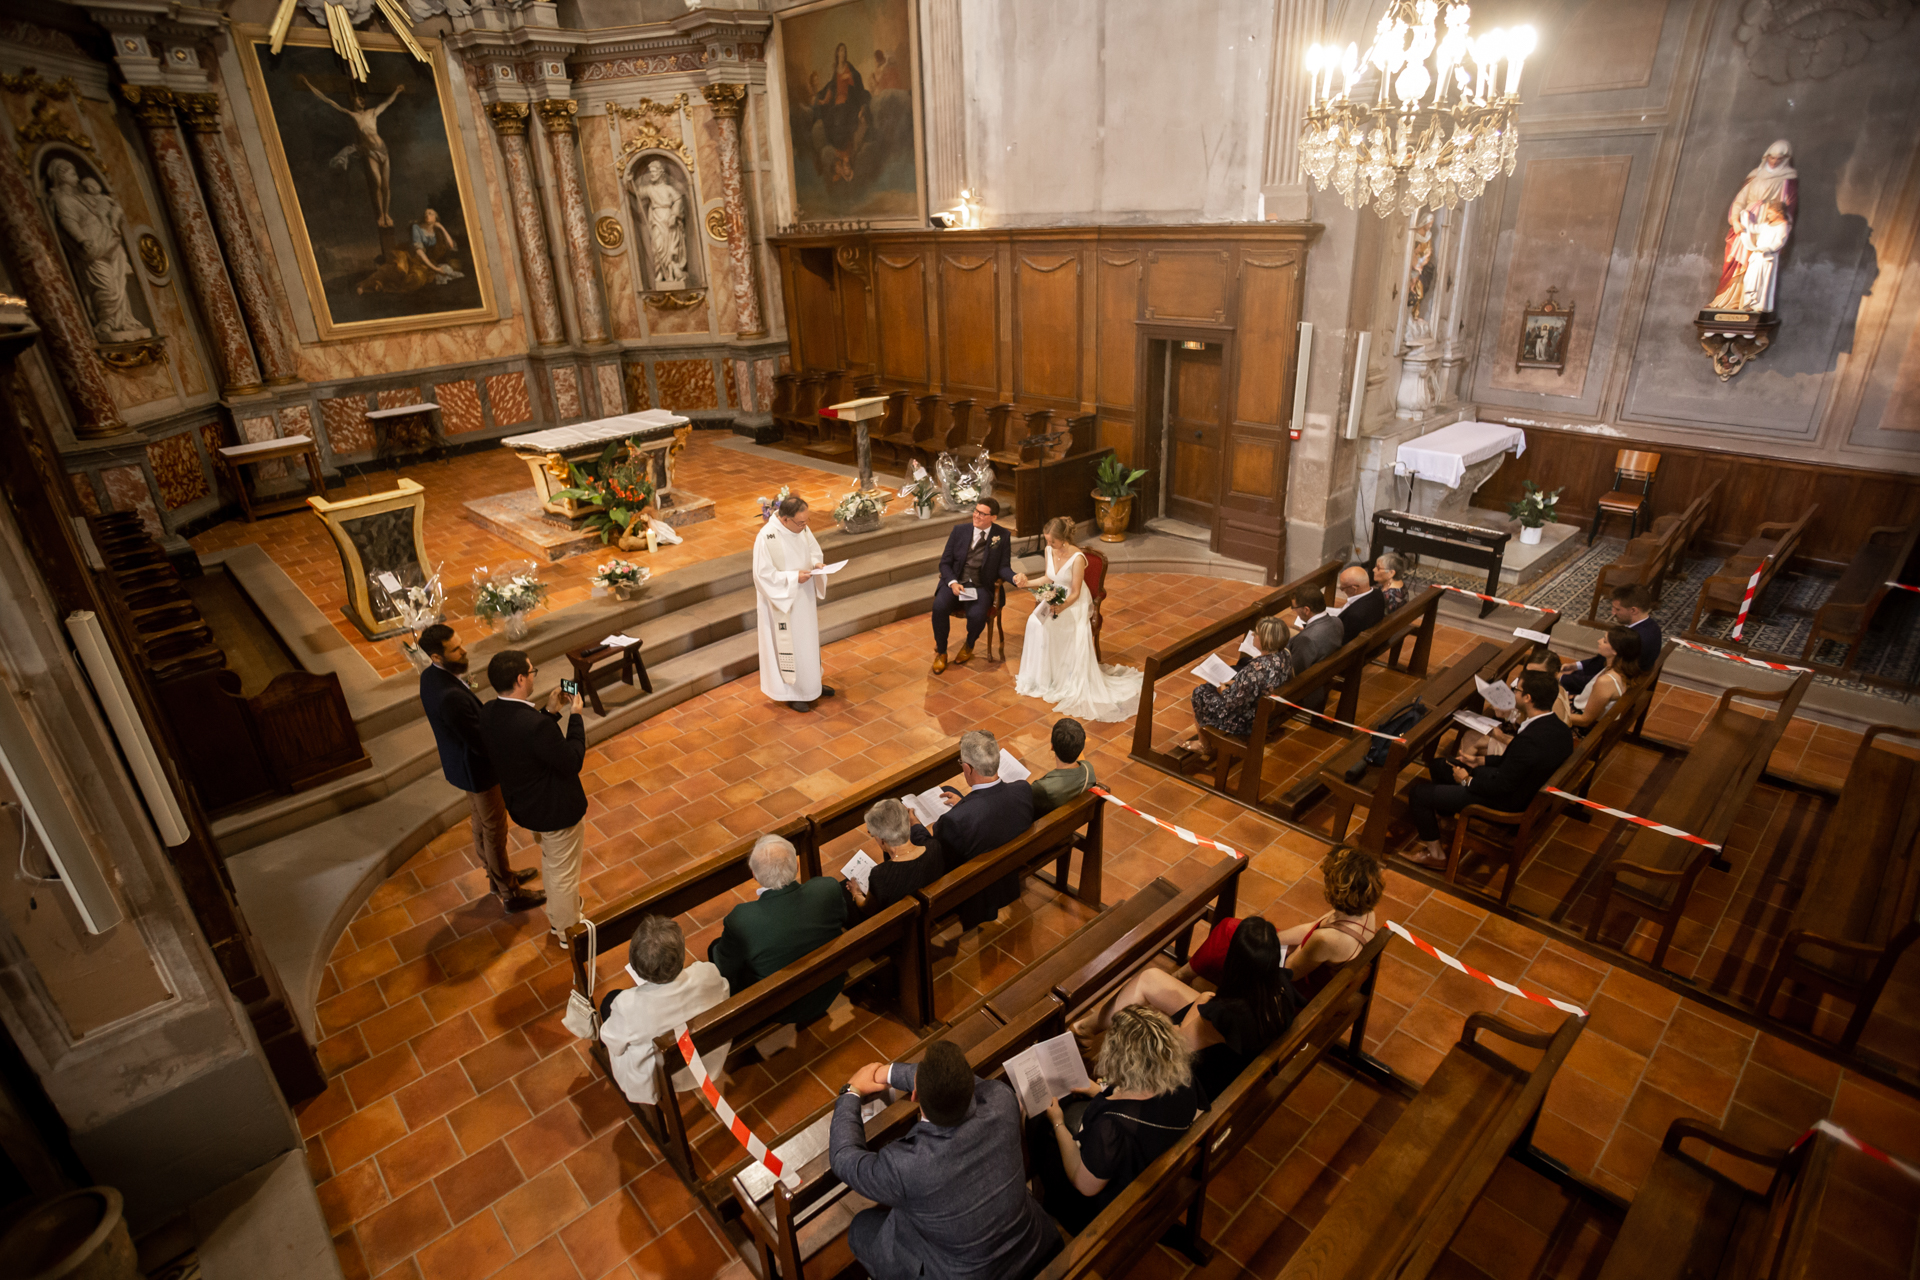 France Elopement Images | In a large and spacious church in France, the couple says their vows